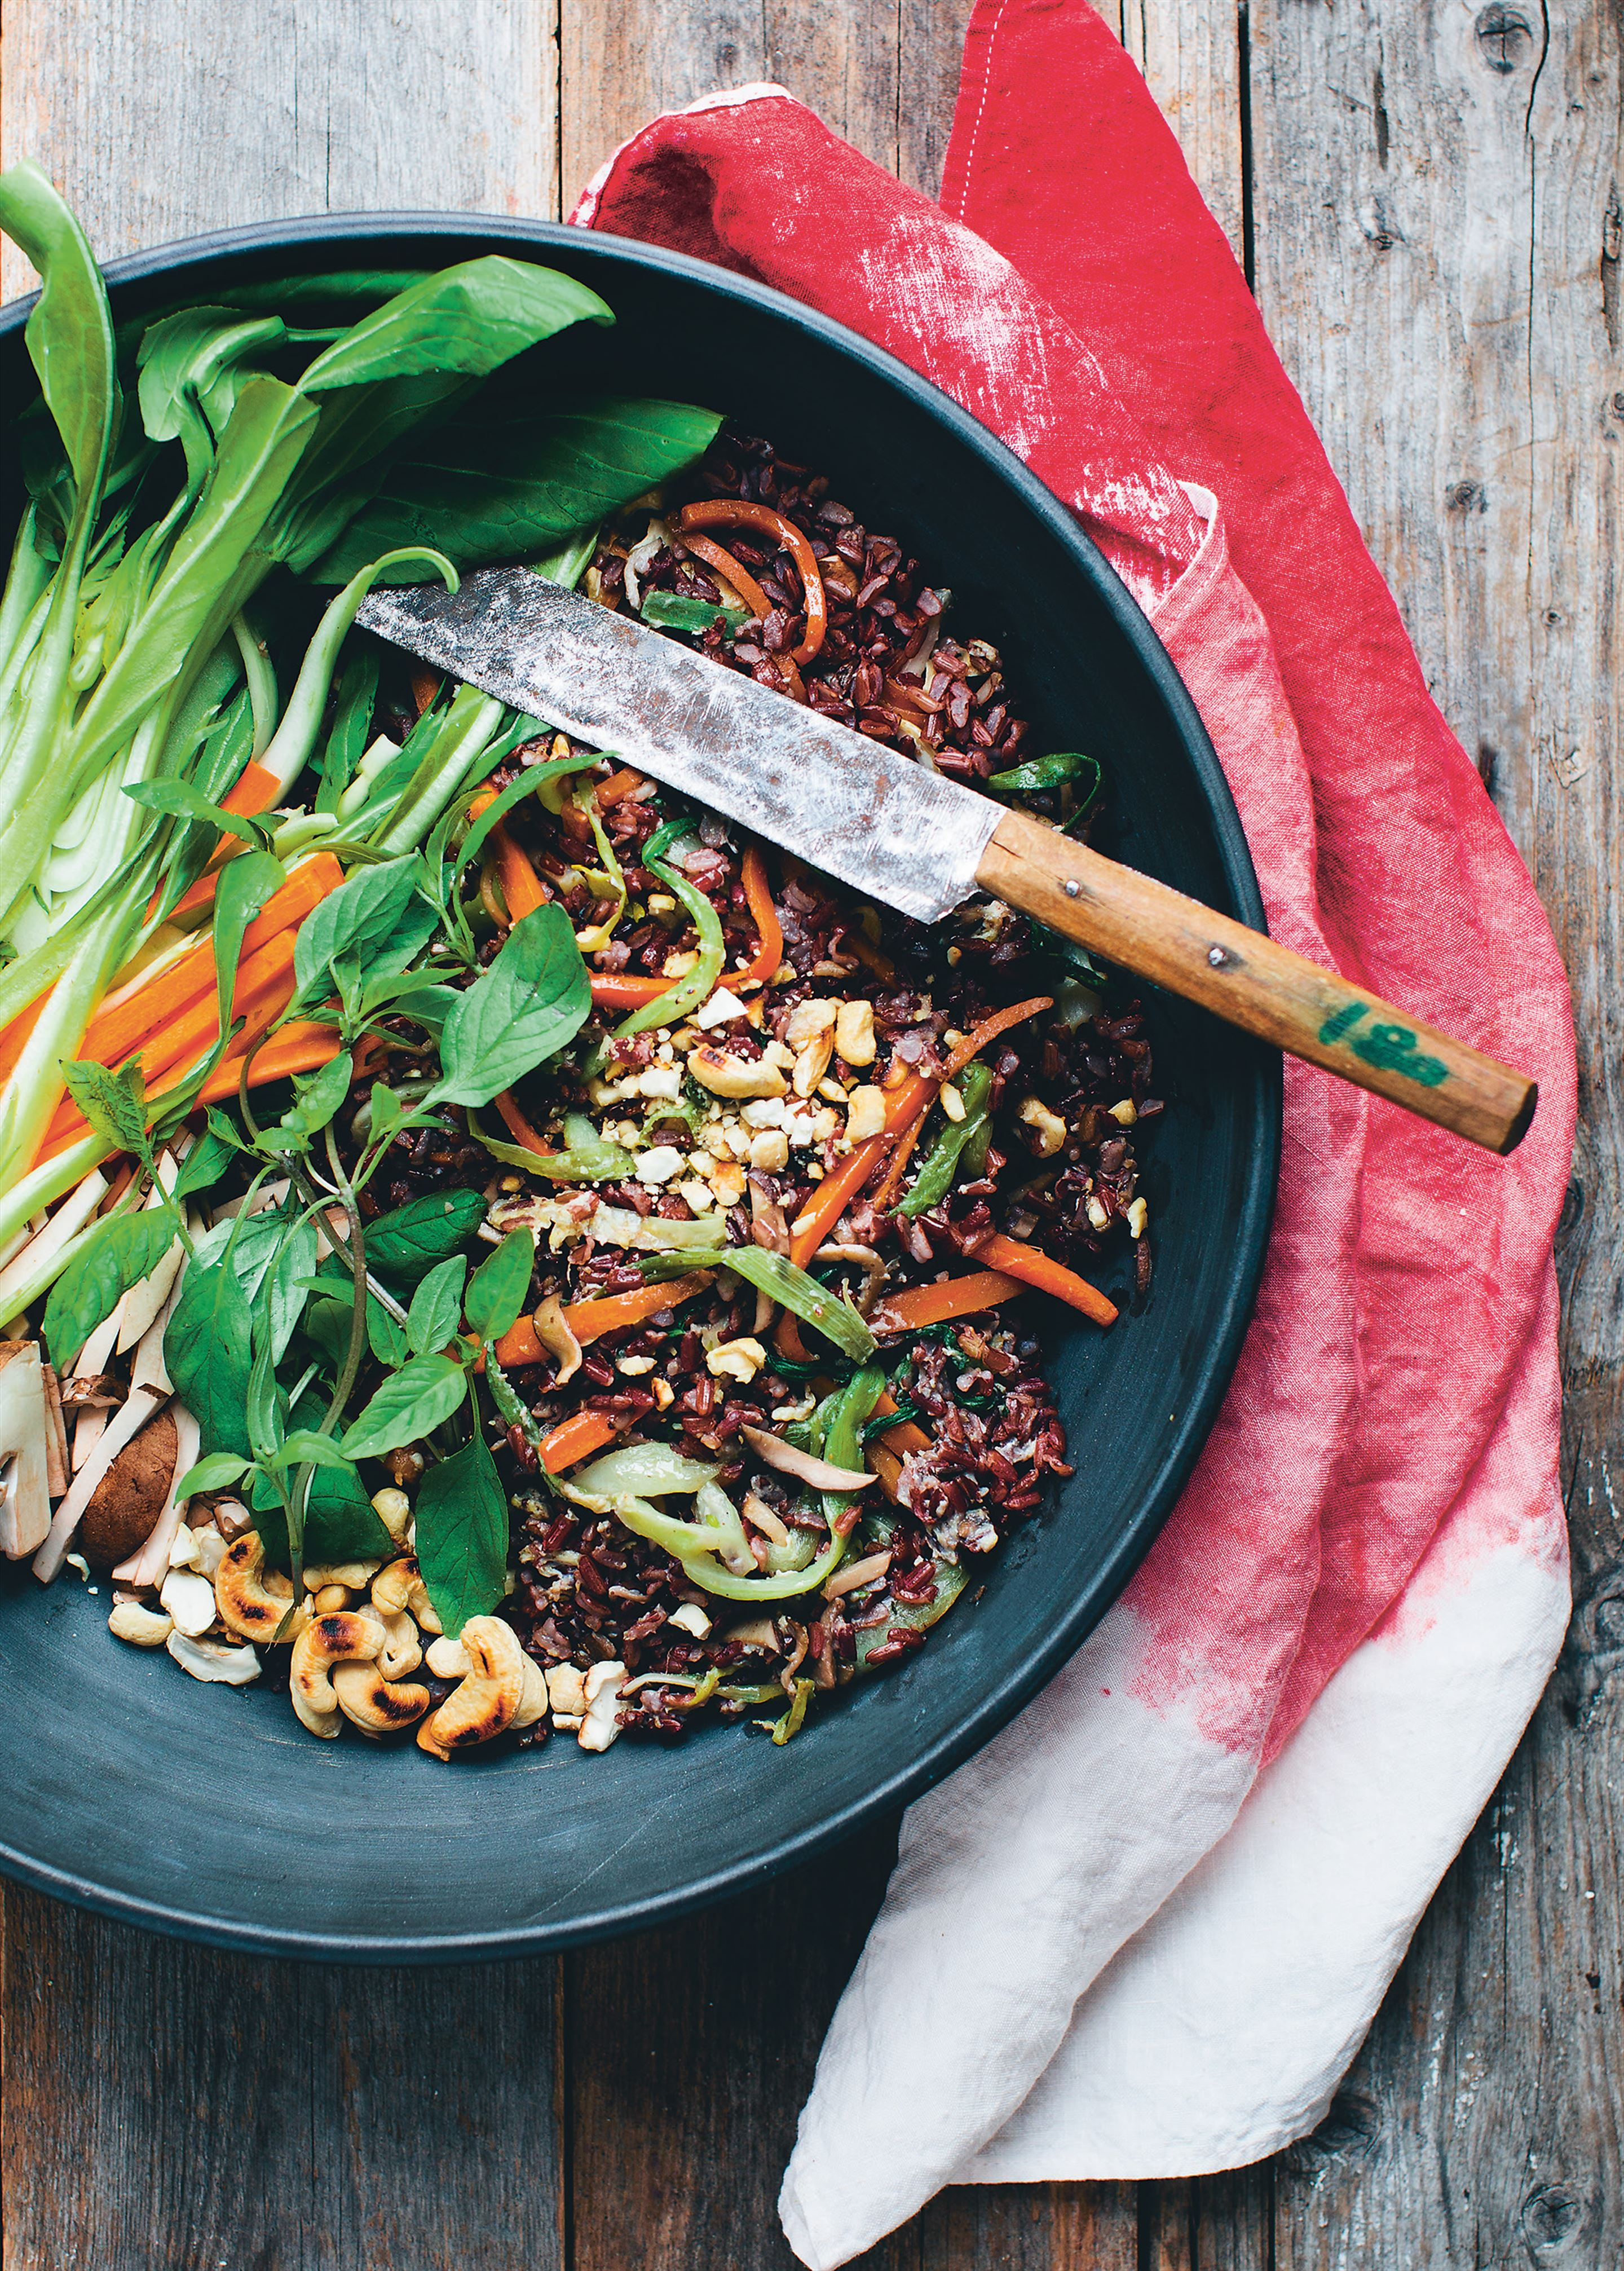 Stir fried red rice